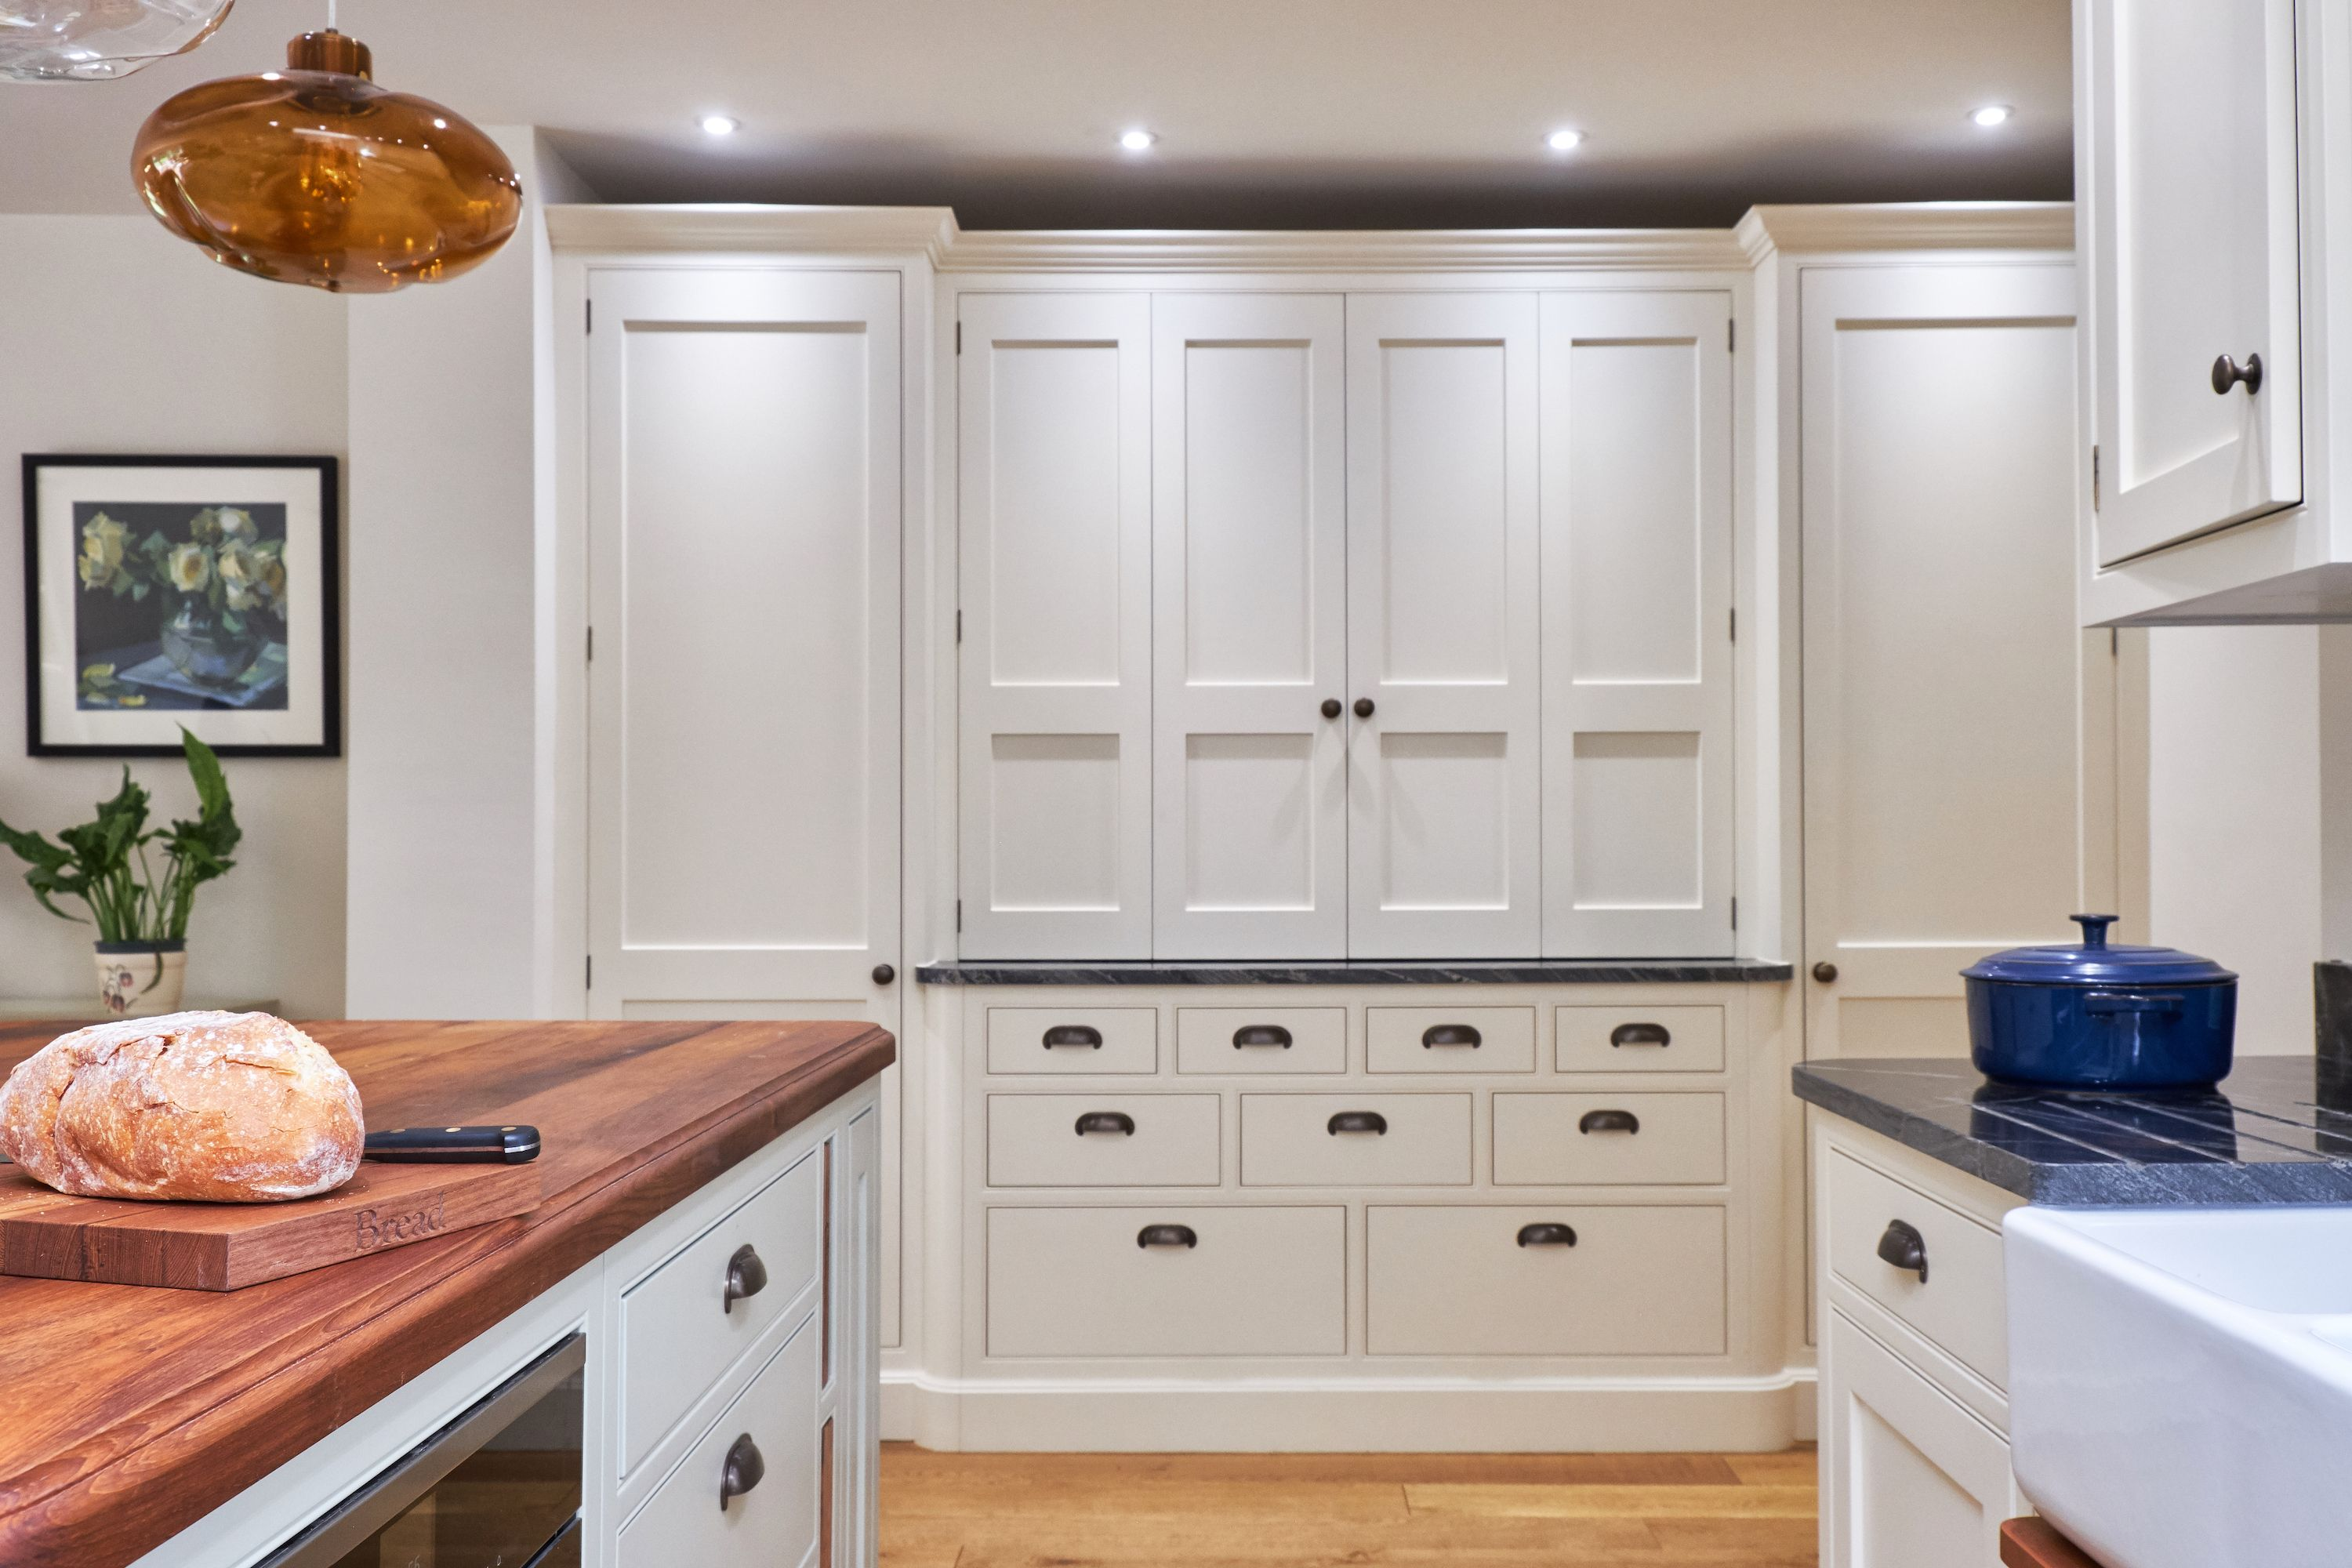 Bespoke kitchen farrow and ball clunch, kitchen island, cabinetry ...